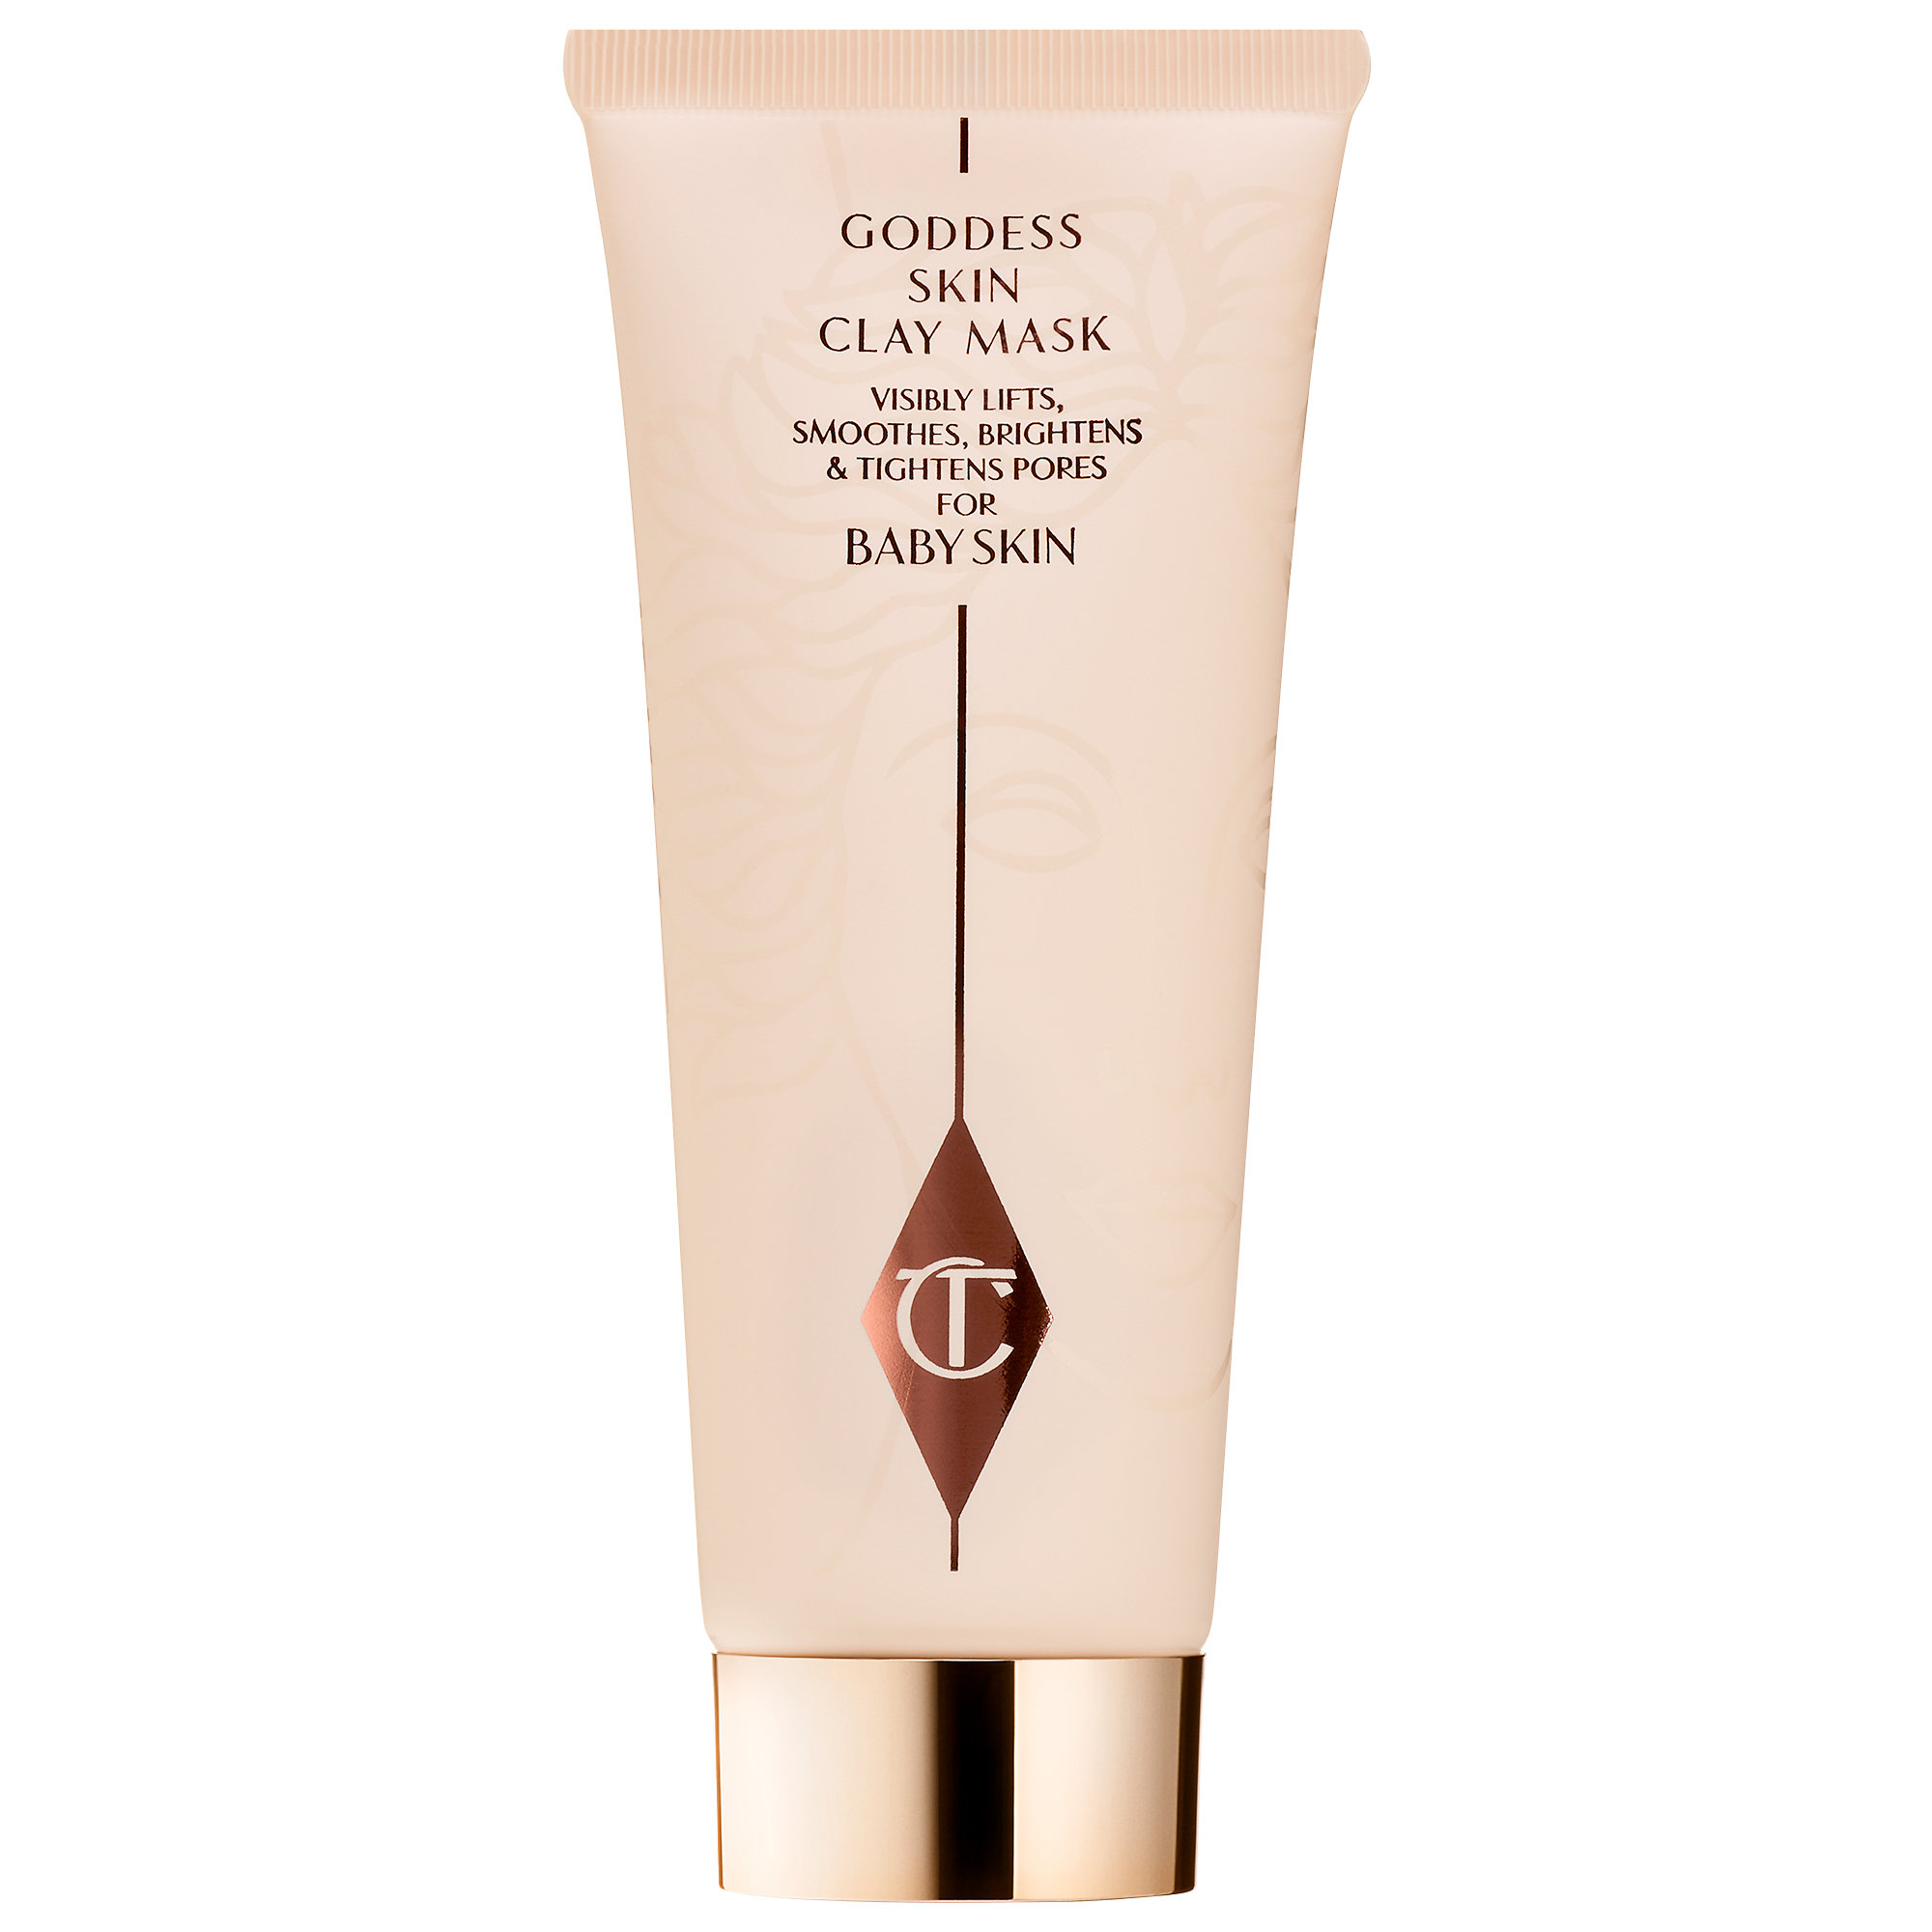 Charlotte Tilbury - Goddess Clay Mask